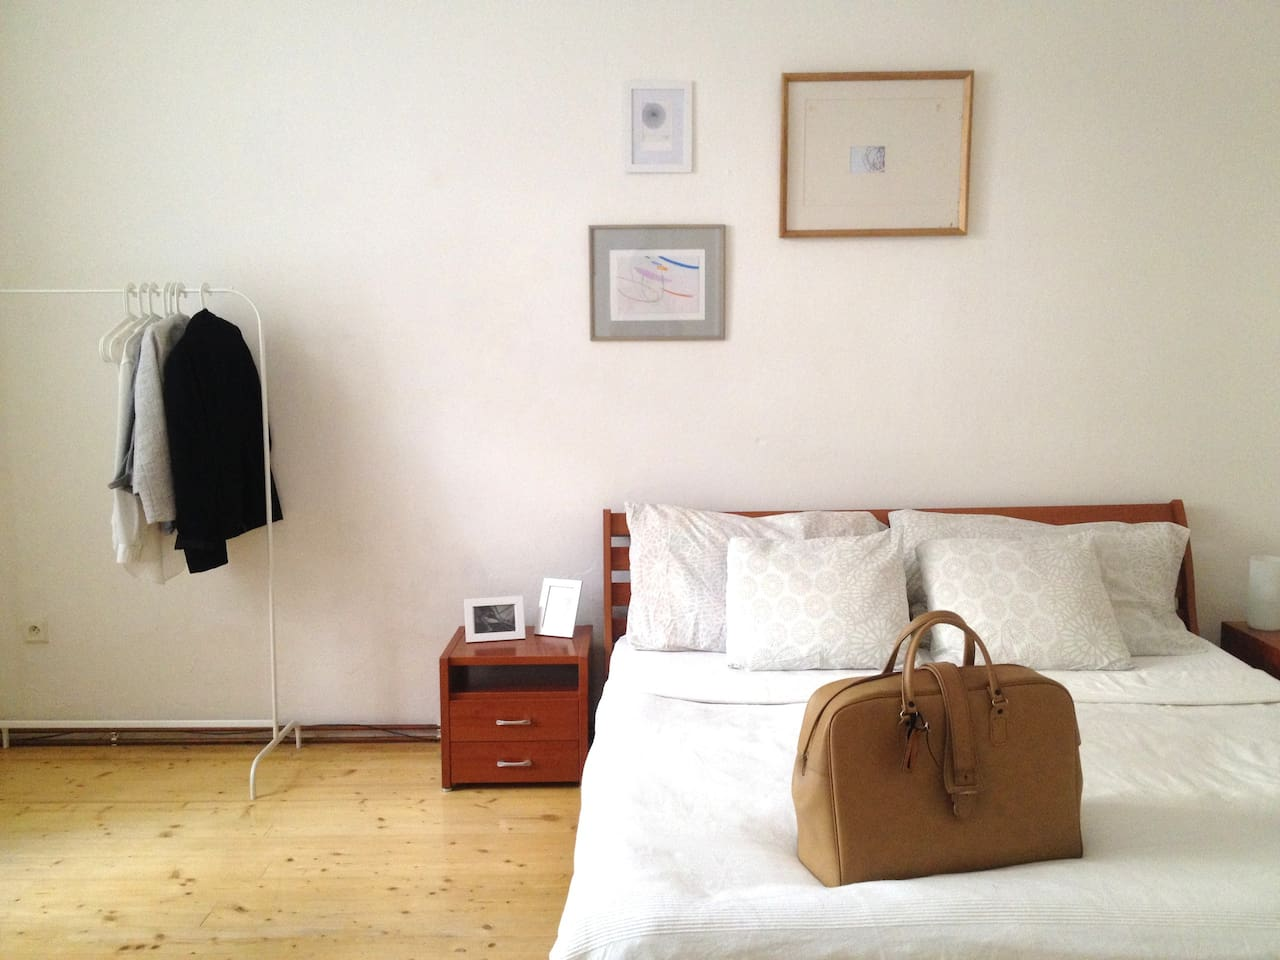 Our comfy bedroom with bed which is 180x200.